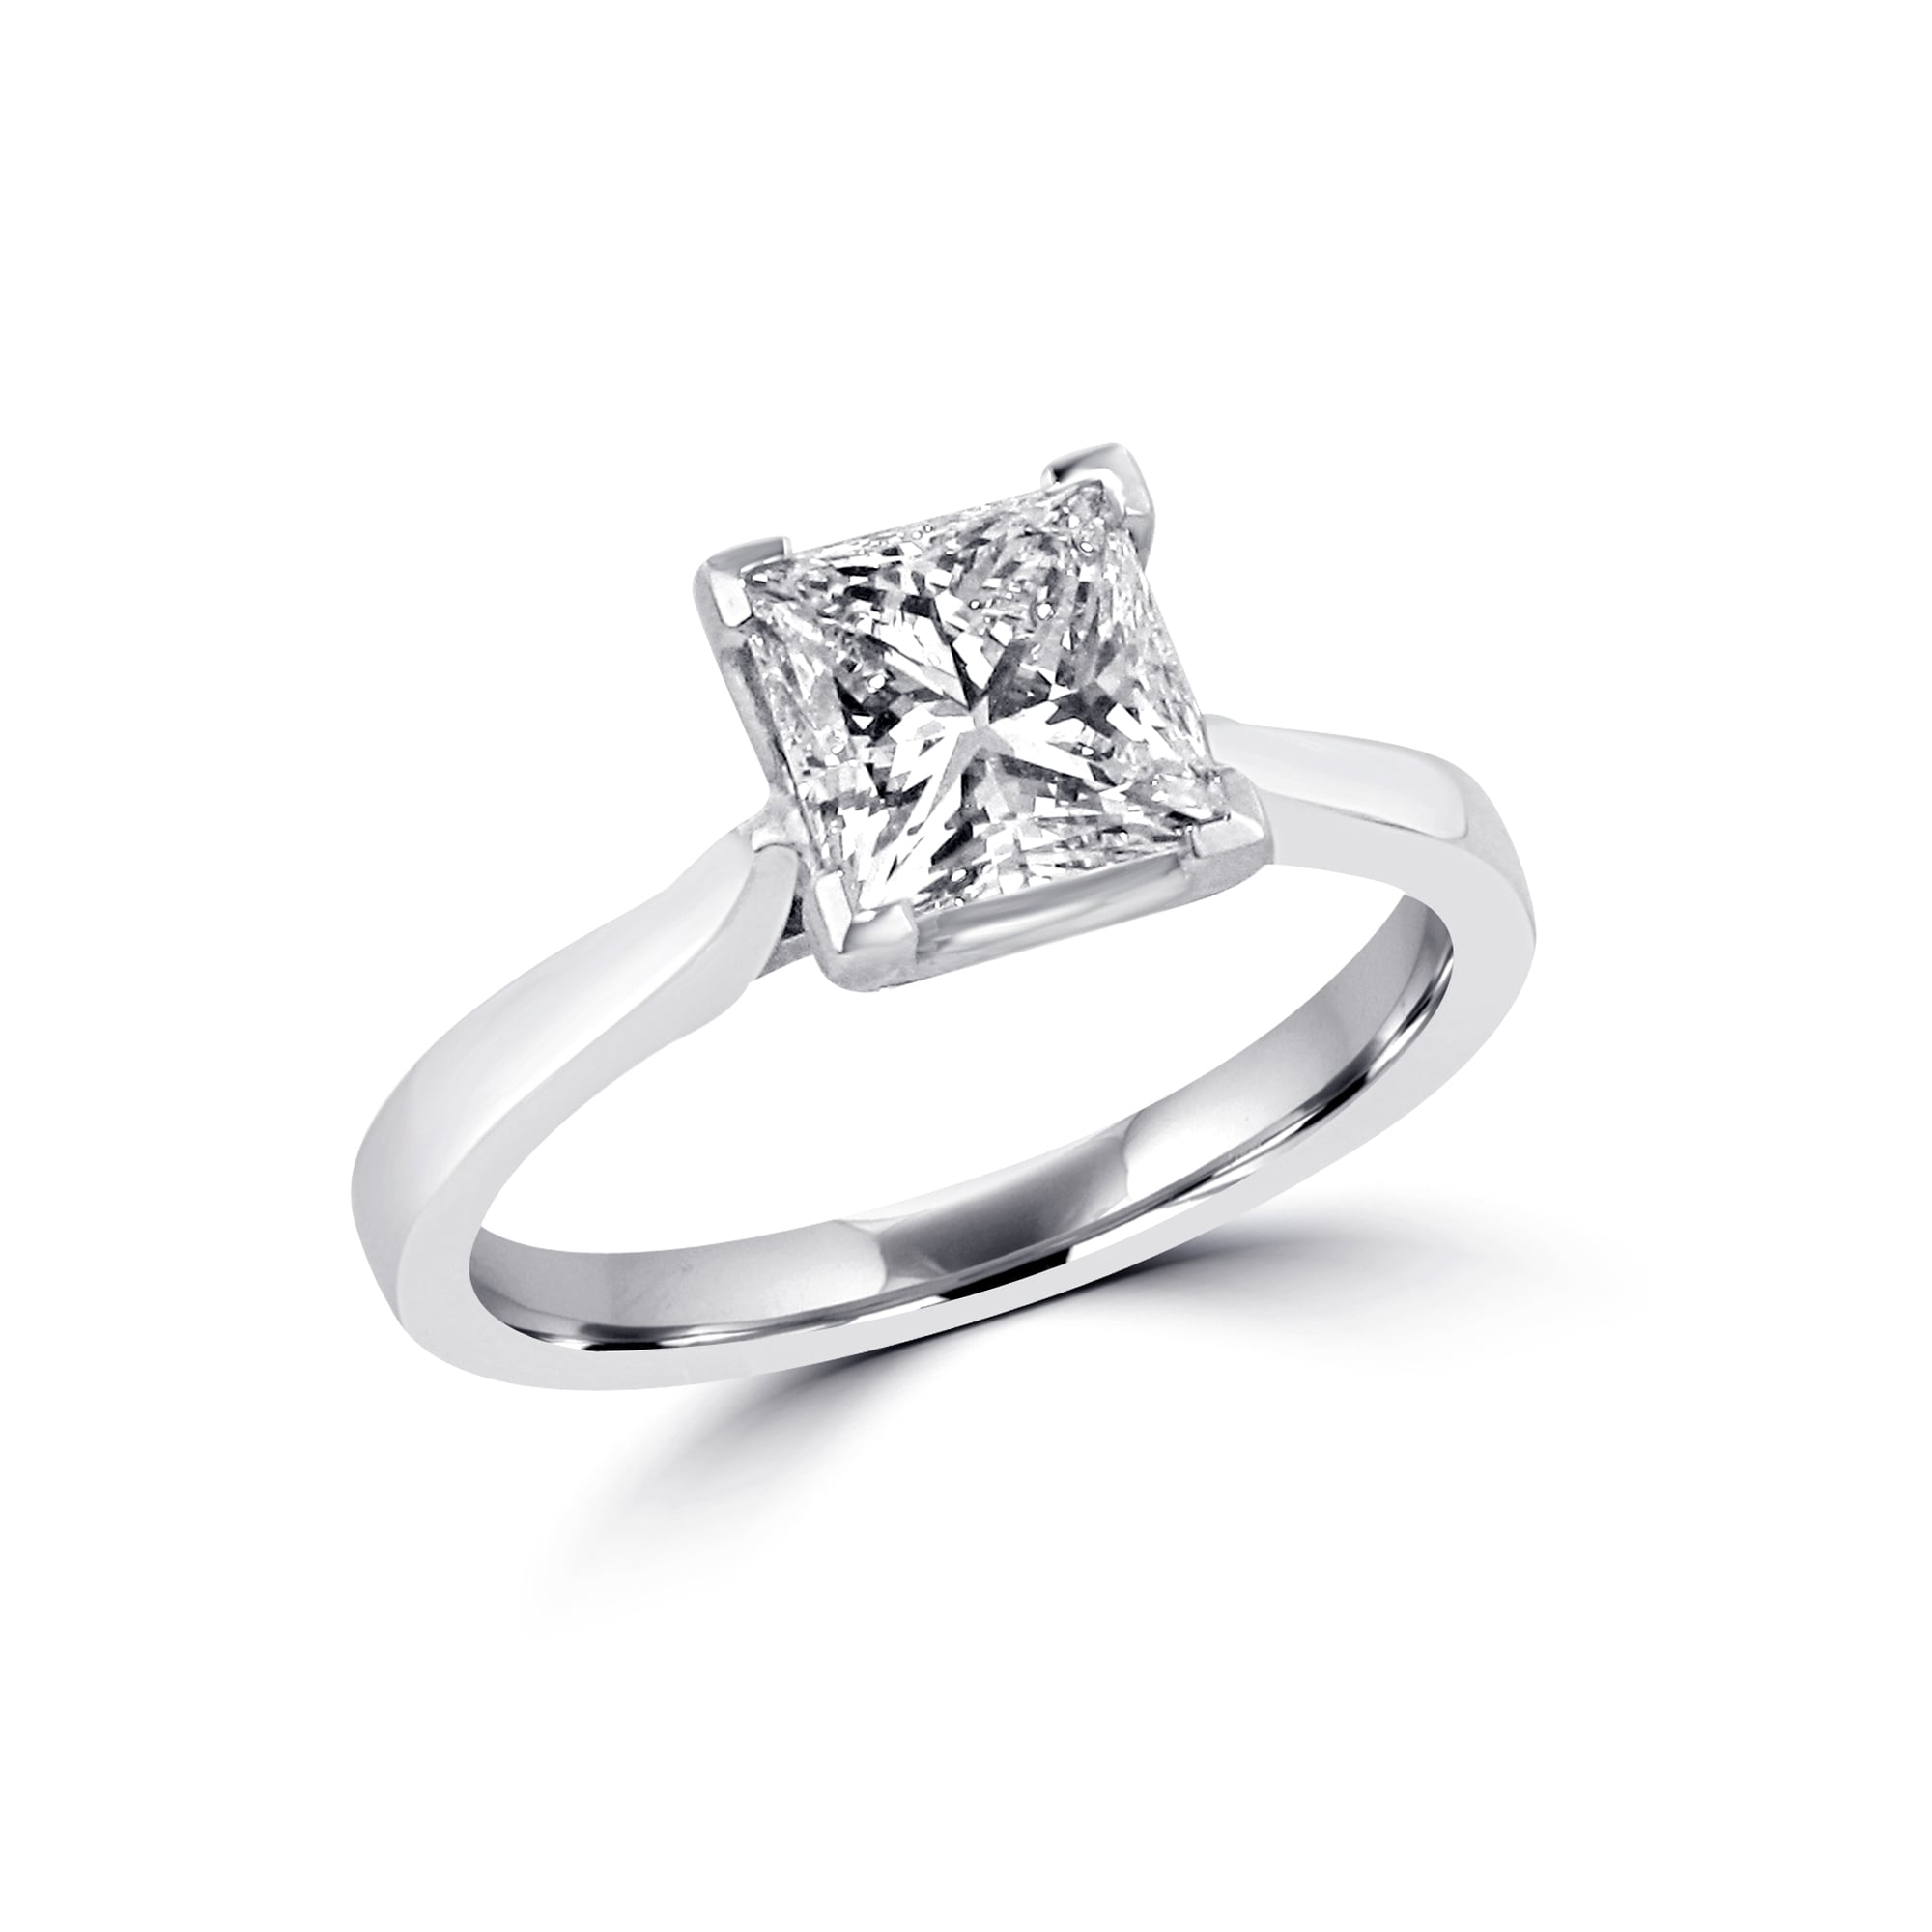 wedding rough products diamond sourced gold in ethically sterling roughdiamondringsterling ring solitaire rings